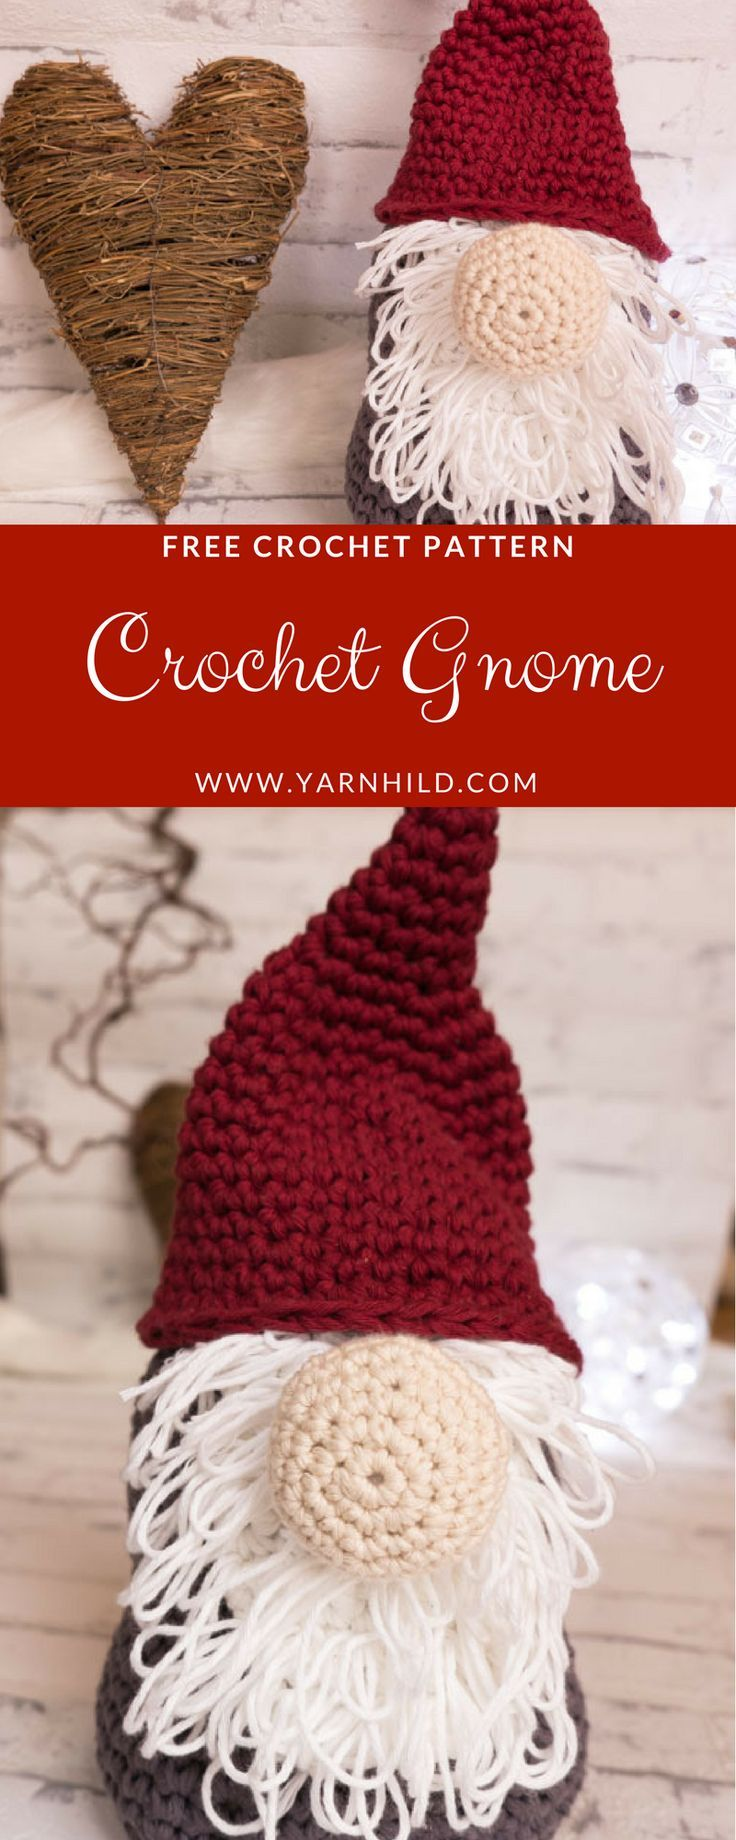 Crochet christmas gnome free crochet pattern at yarnhild crochet christmas gnome free crochet pattern at yarnhild pattern in norwegian and bankloansurffo Image collections